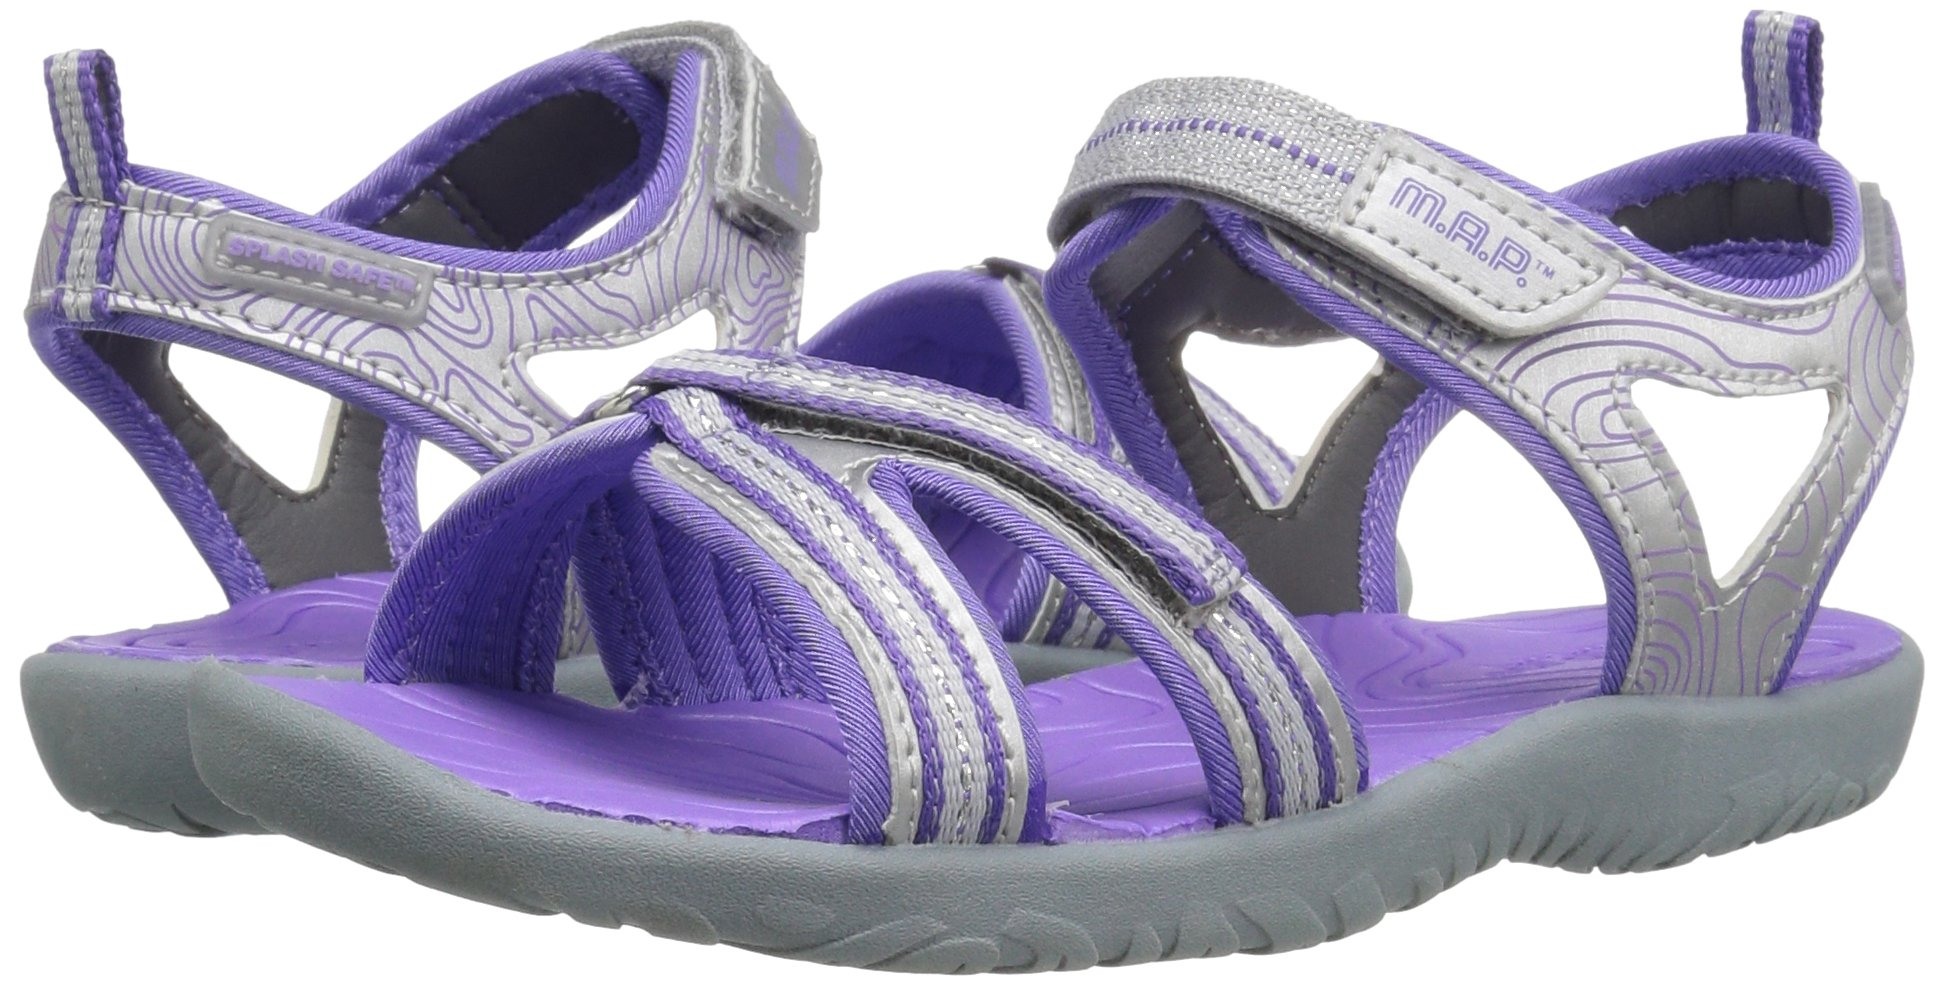 M.A.P. Lorna Girl's Outdoor Sandal, Silver/Purple, 2 M US Little Kid by M.A.P. (Image #6)